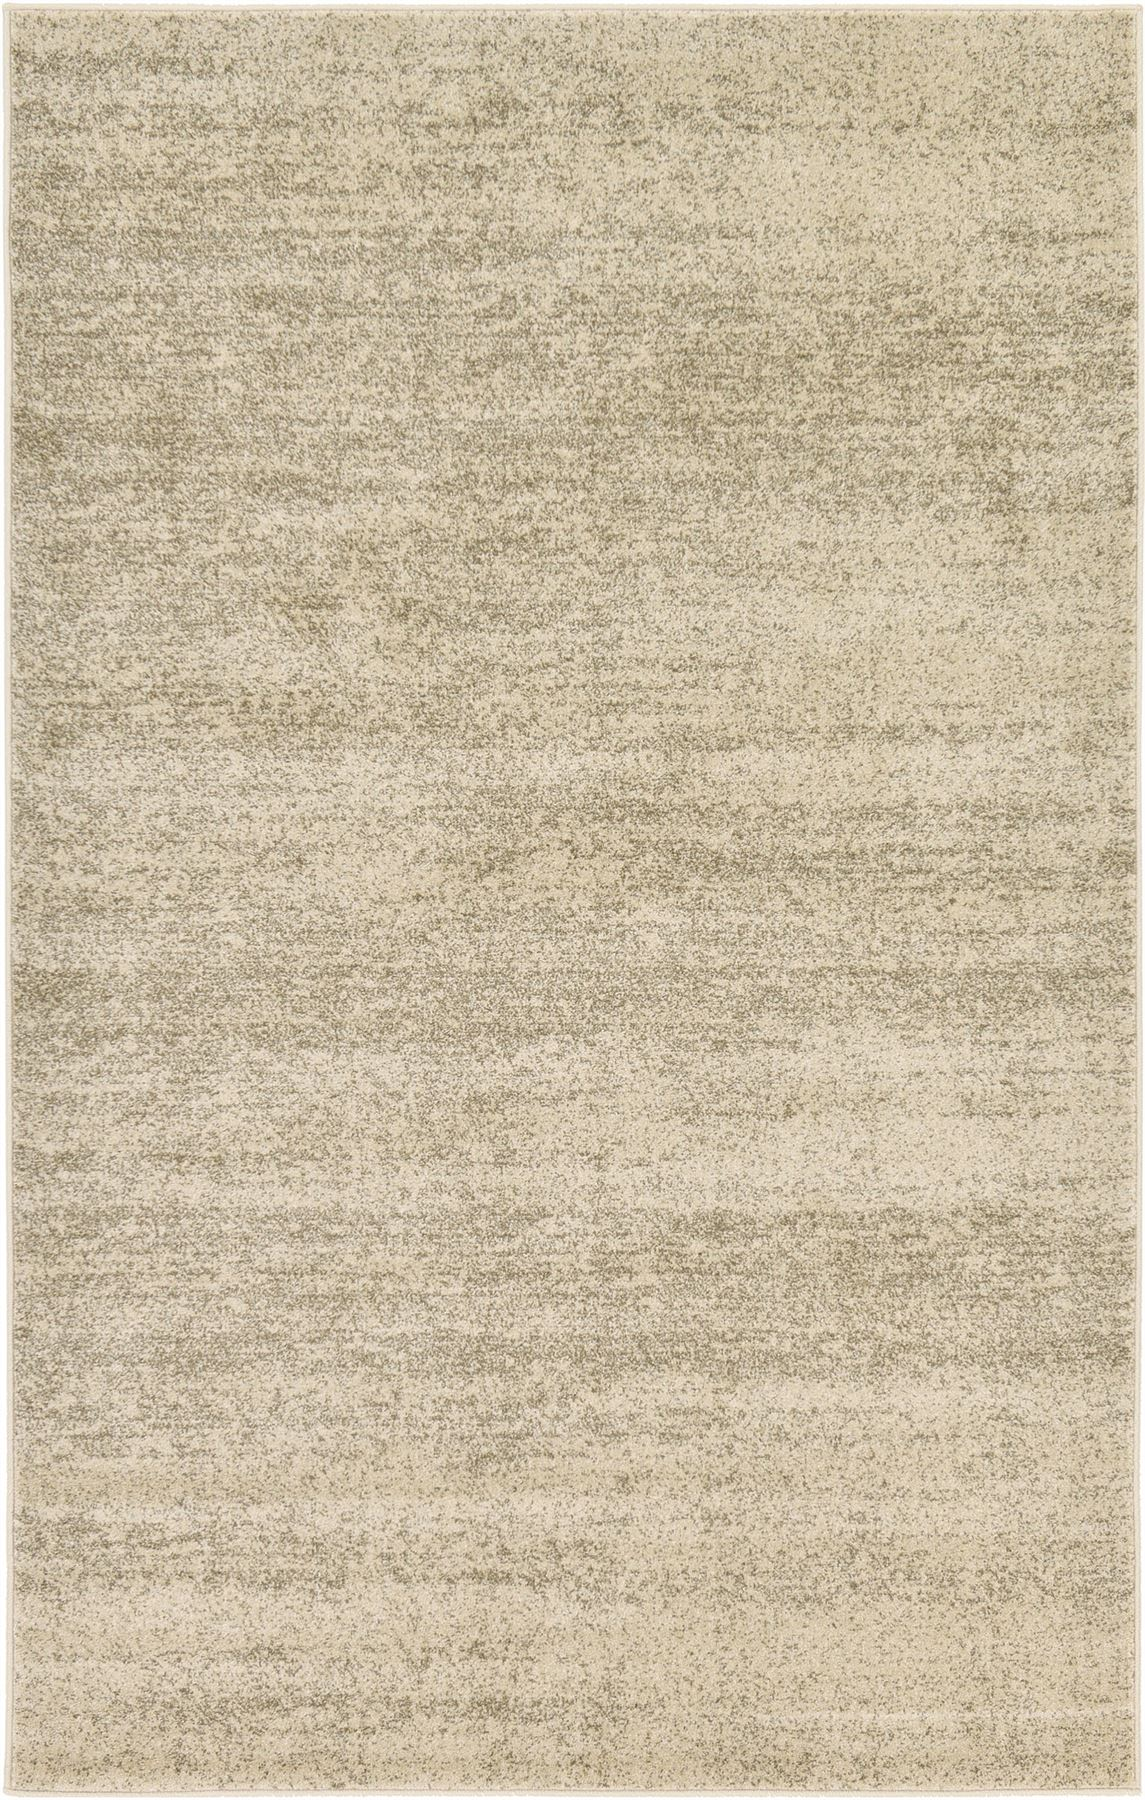 Modern Multi Colors Area Rug Solid Plain Contemporary Shag